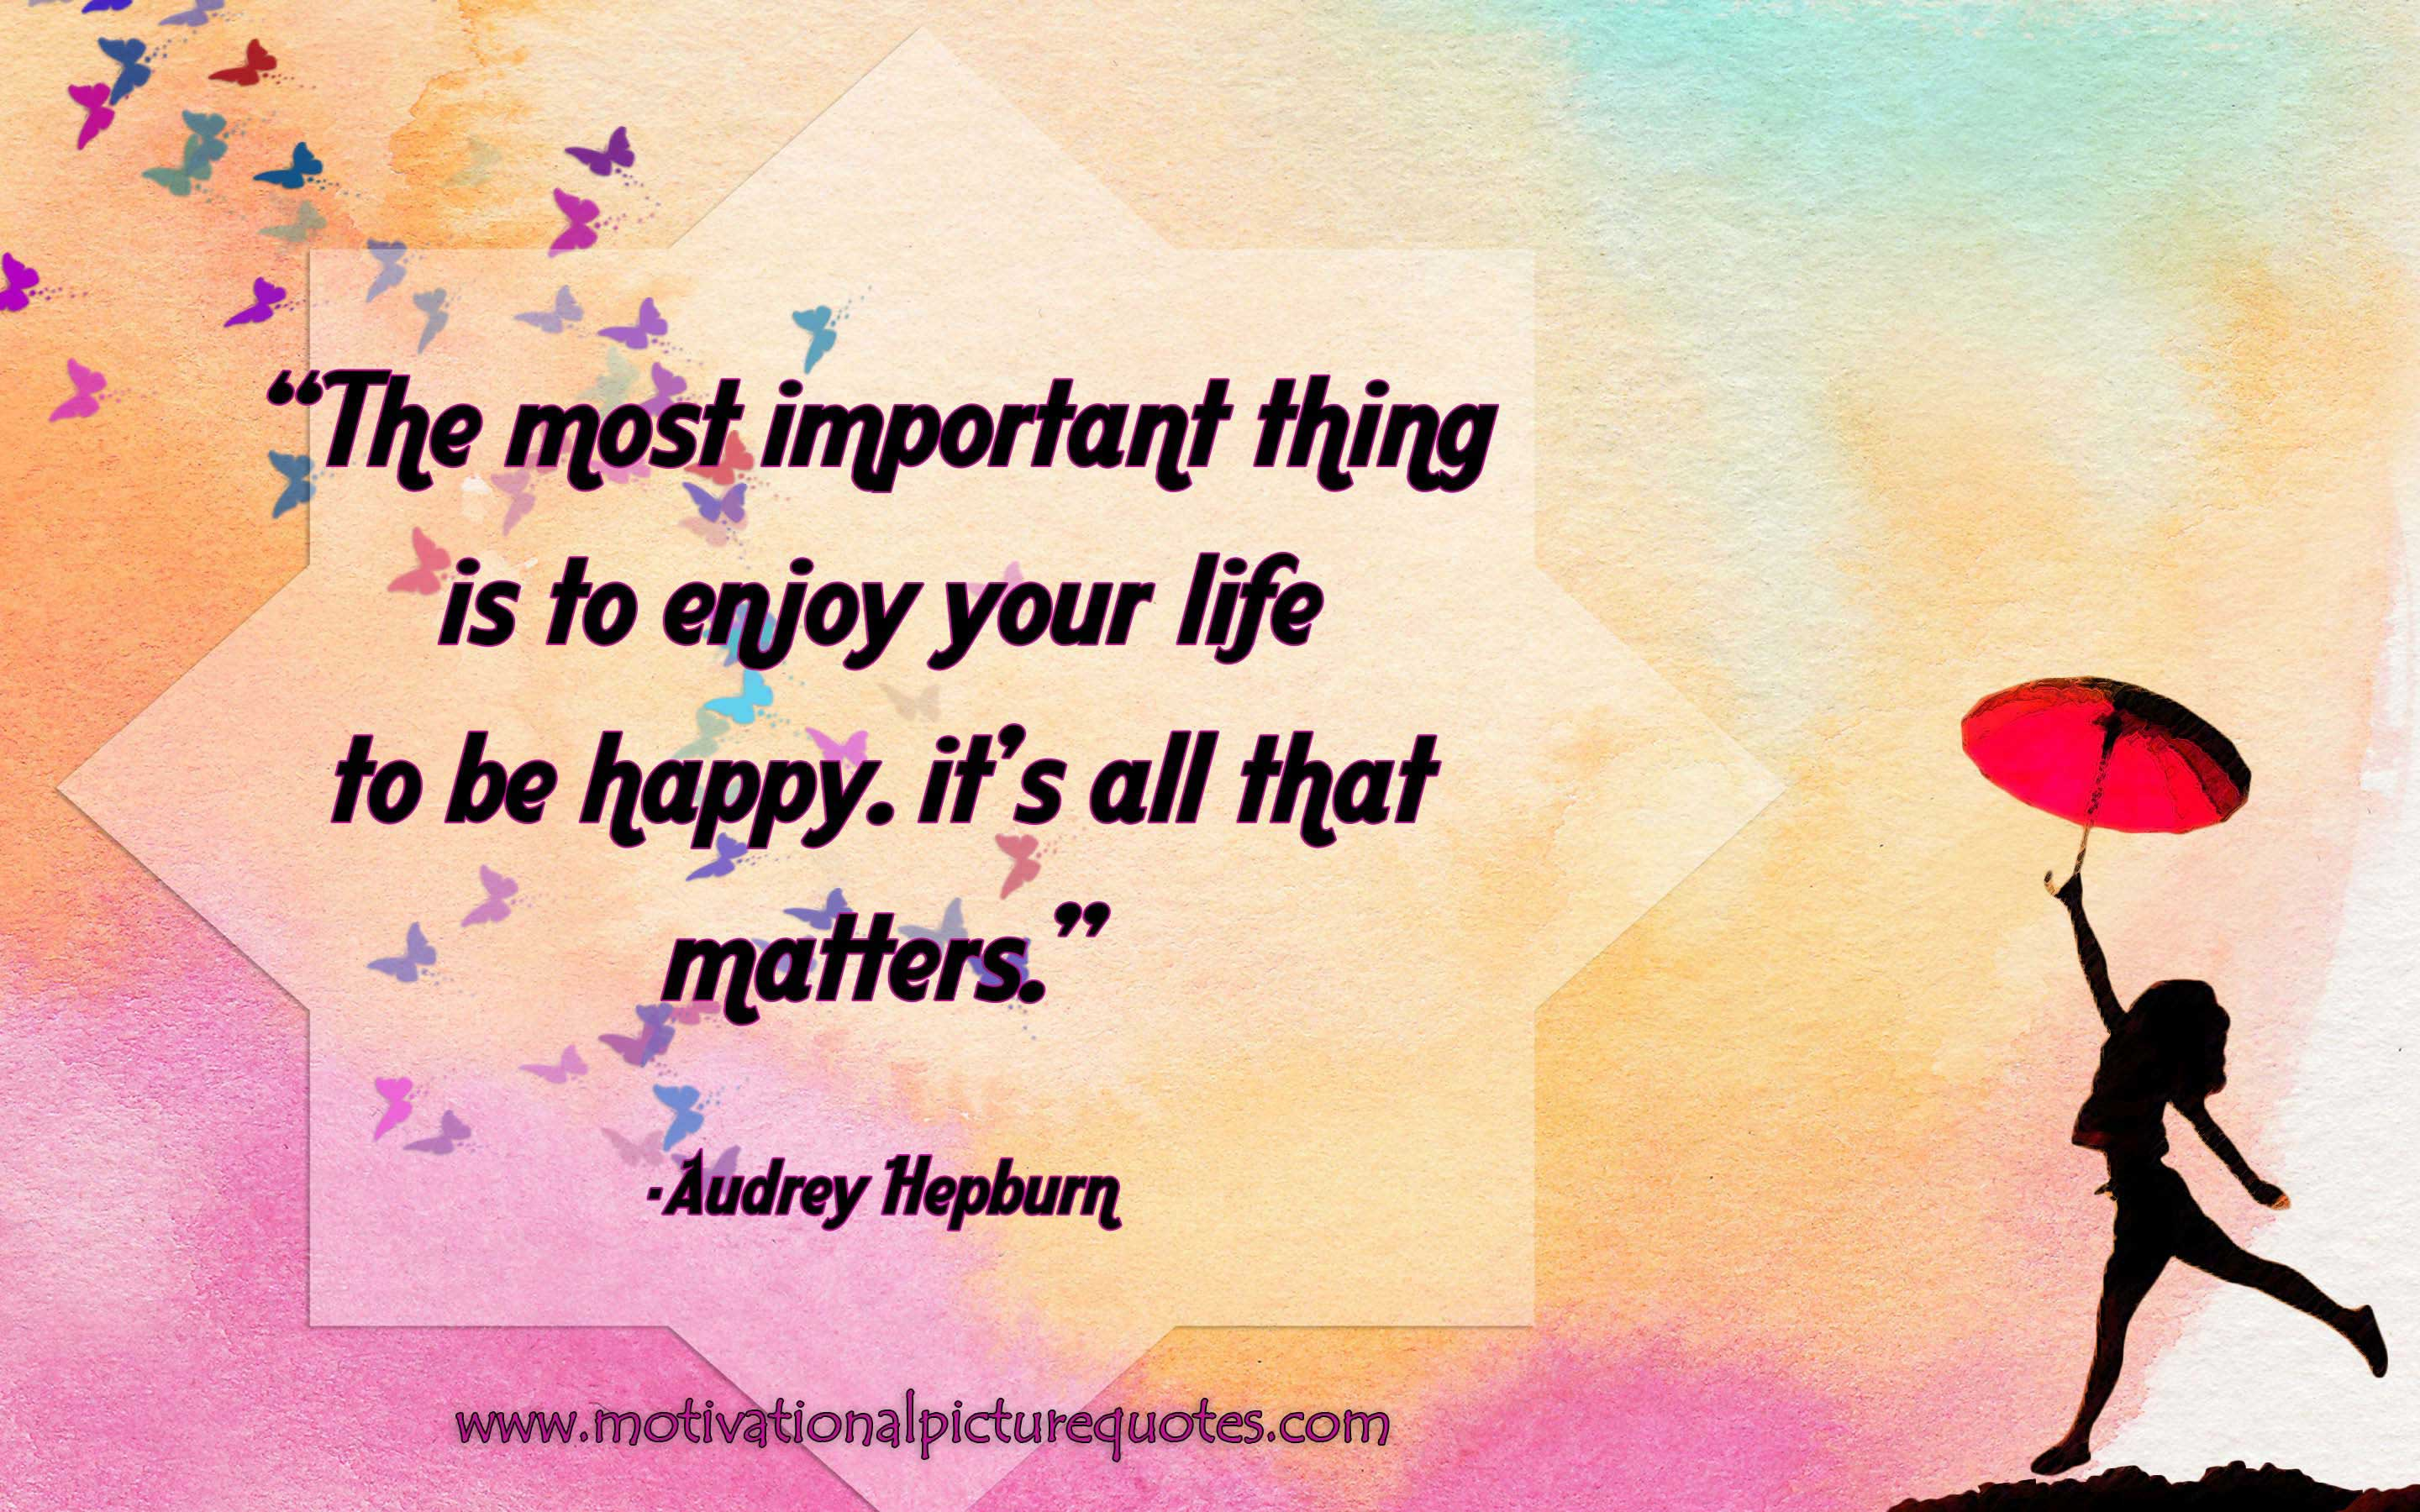 Image of: Love Happiness Motivational Quotes About Life By Audrey Hepburn Insbright 50 Best Life Quotes Images For Free Download Insbright